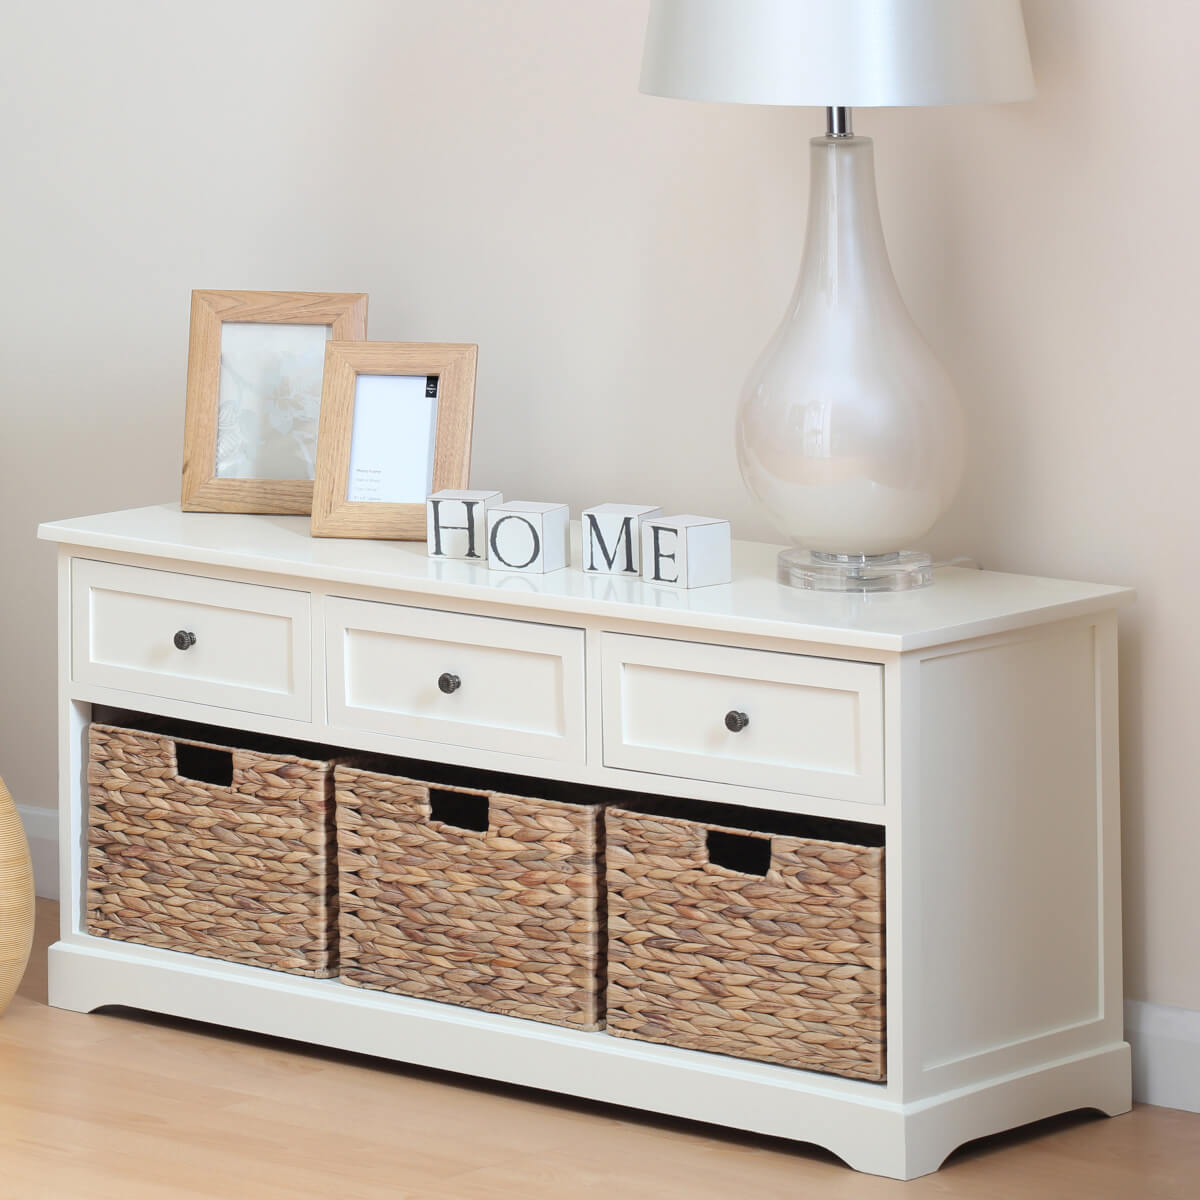 White painted hallway bench with 3 drawers and 3 baskets